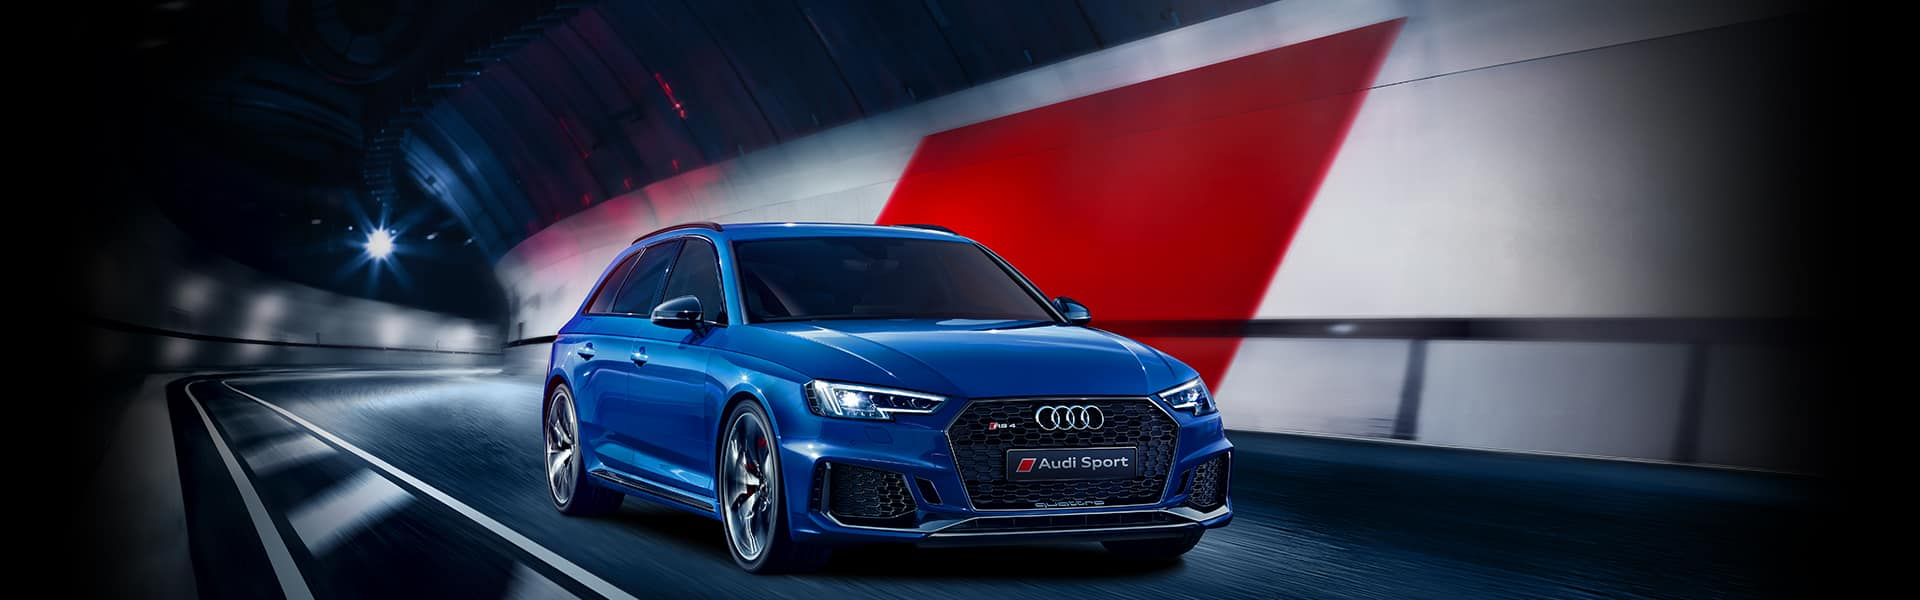 The new Audi RS 4 Avant.